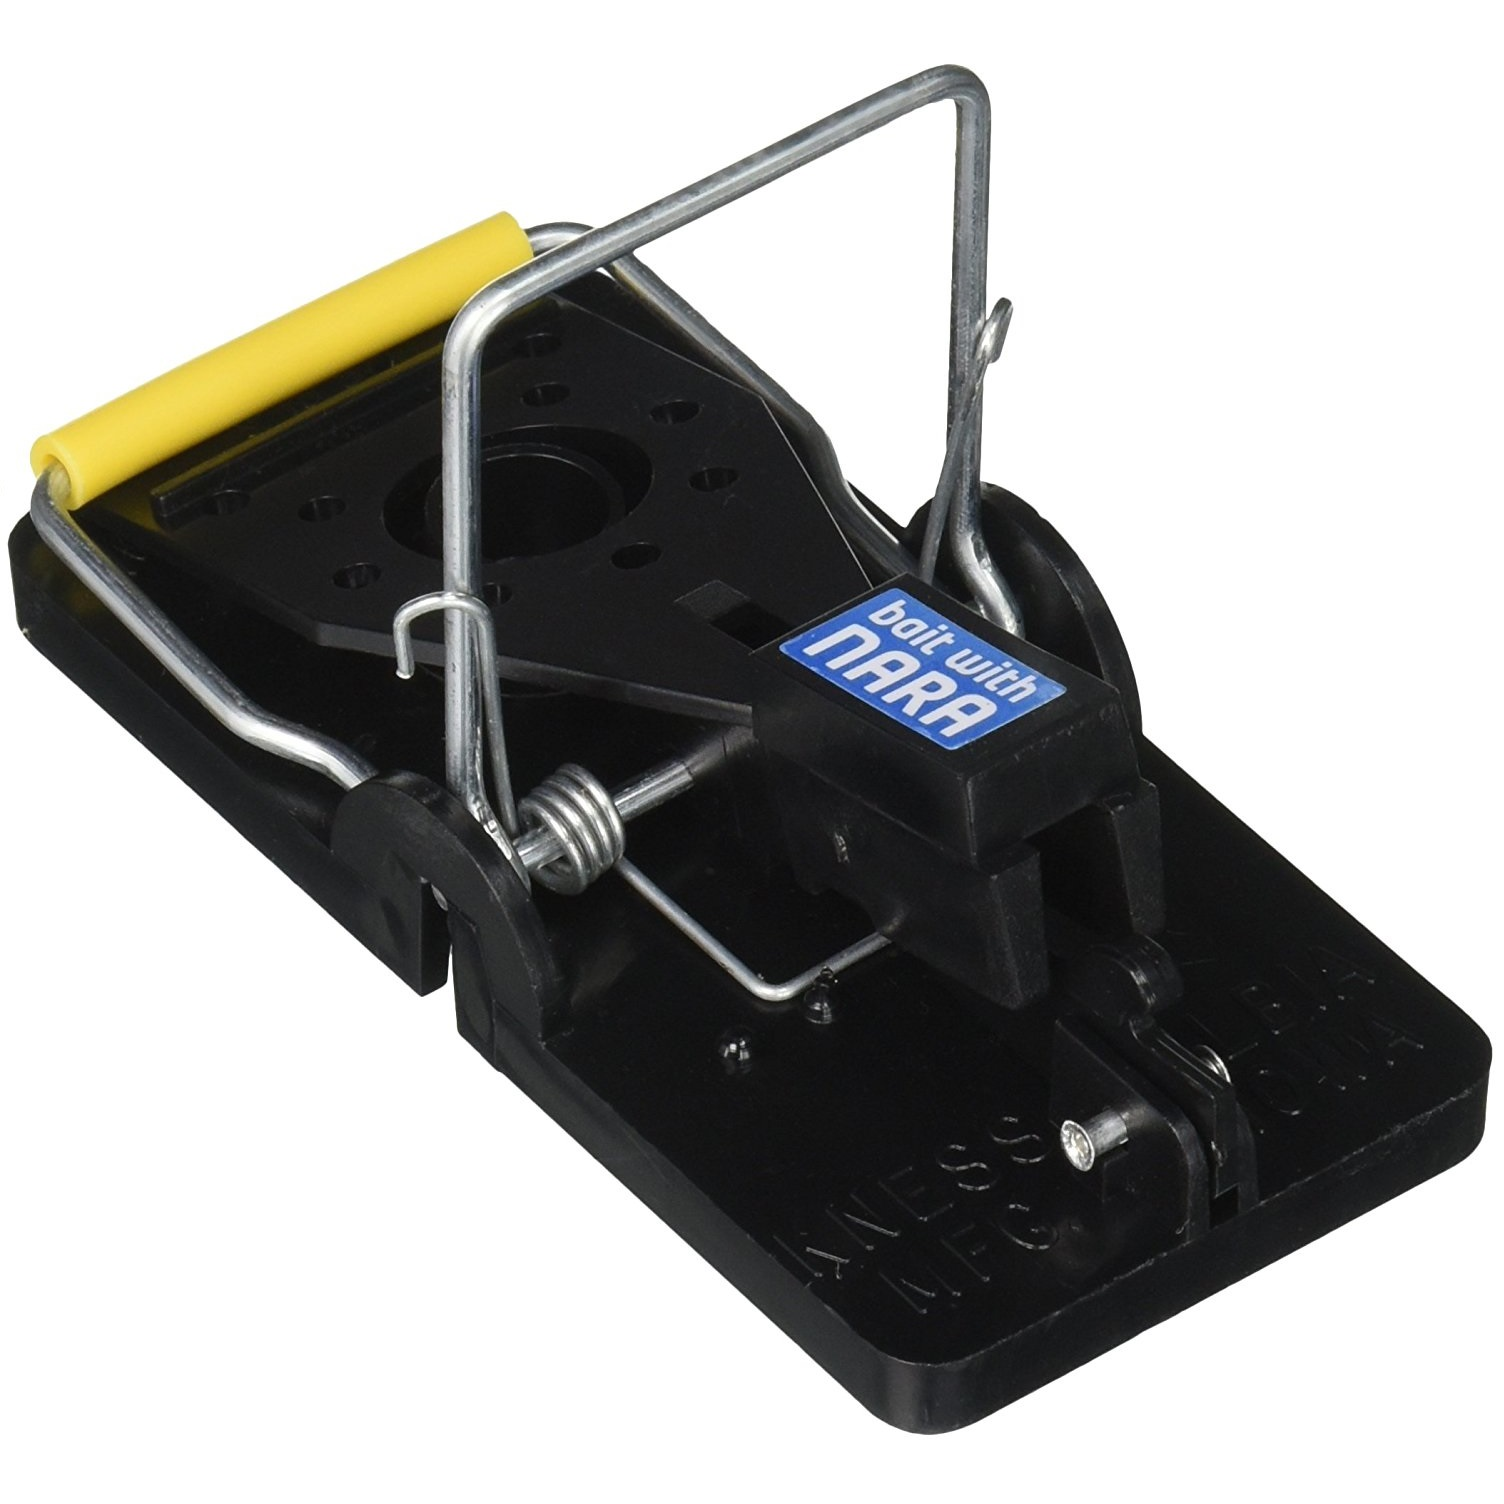 Kness Snap-E Mousetrap with Built-In Bait Holder